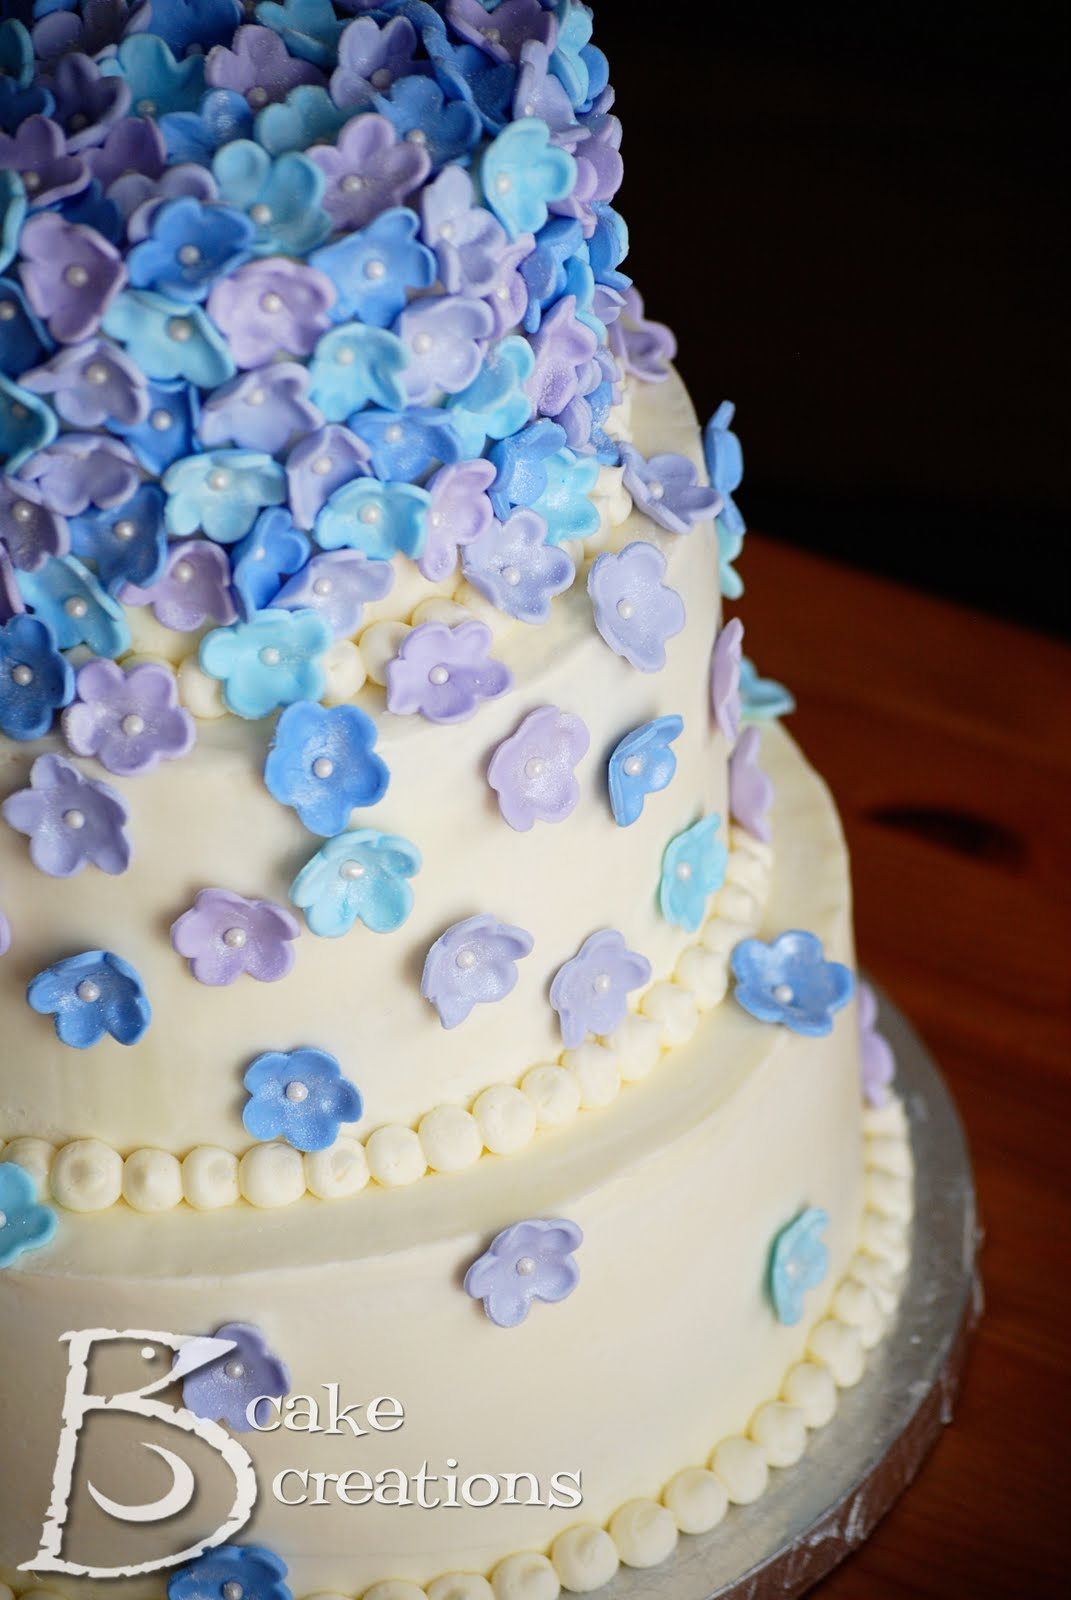 Snuggle s blog Purple and Silver Wedding Cake purple